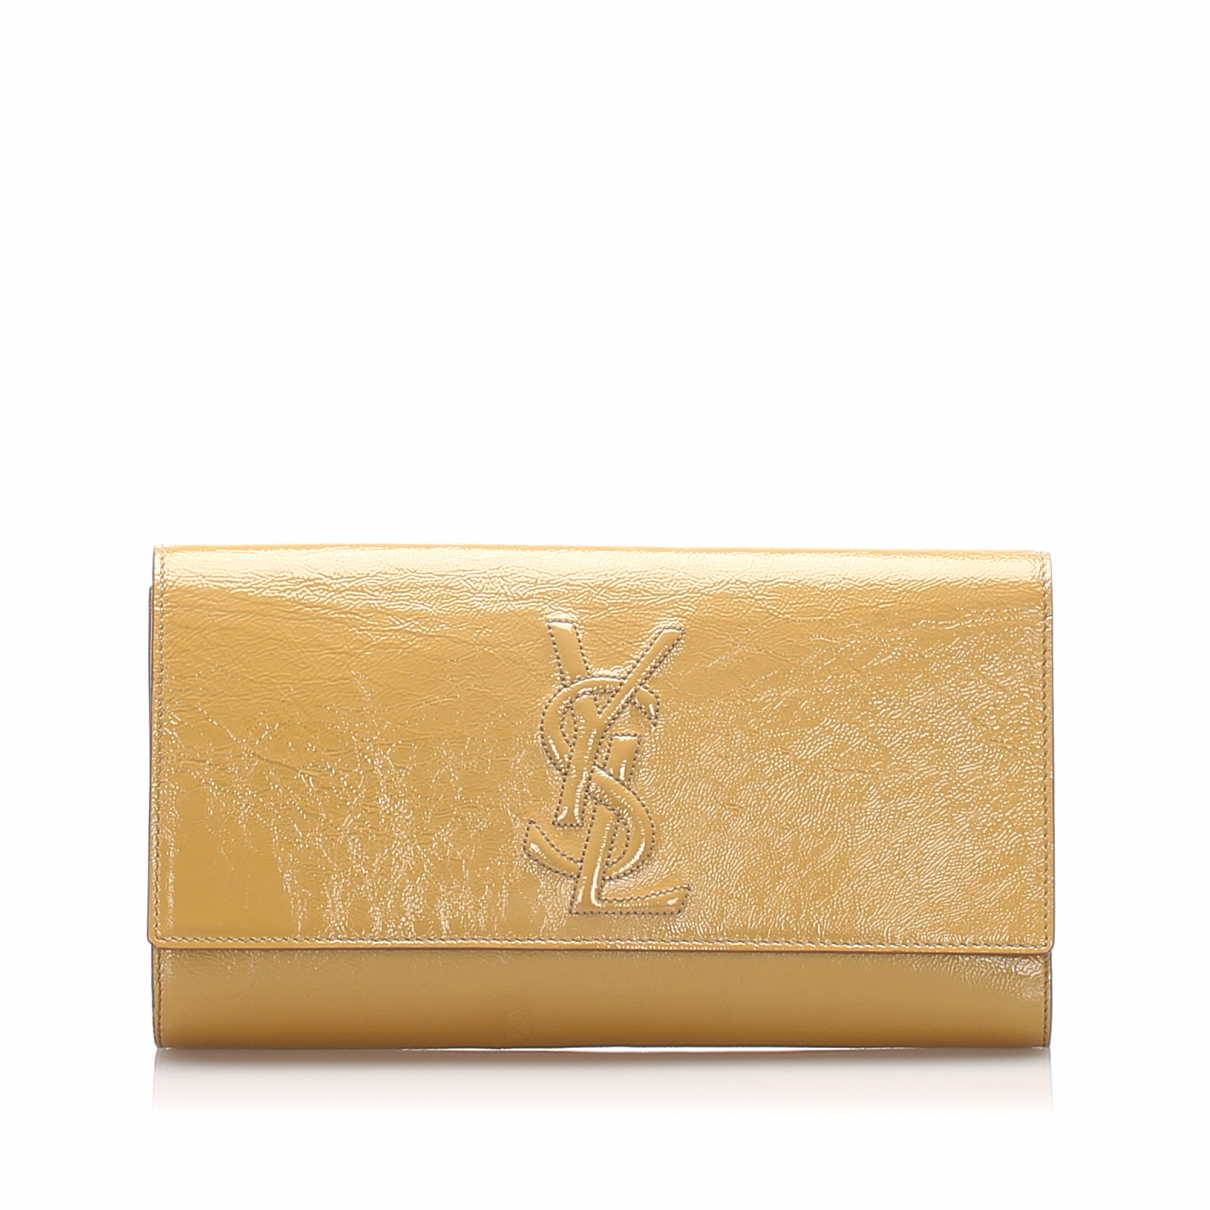 Yves Saint Laurent \N Clutch in  Braun Leder